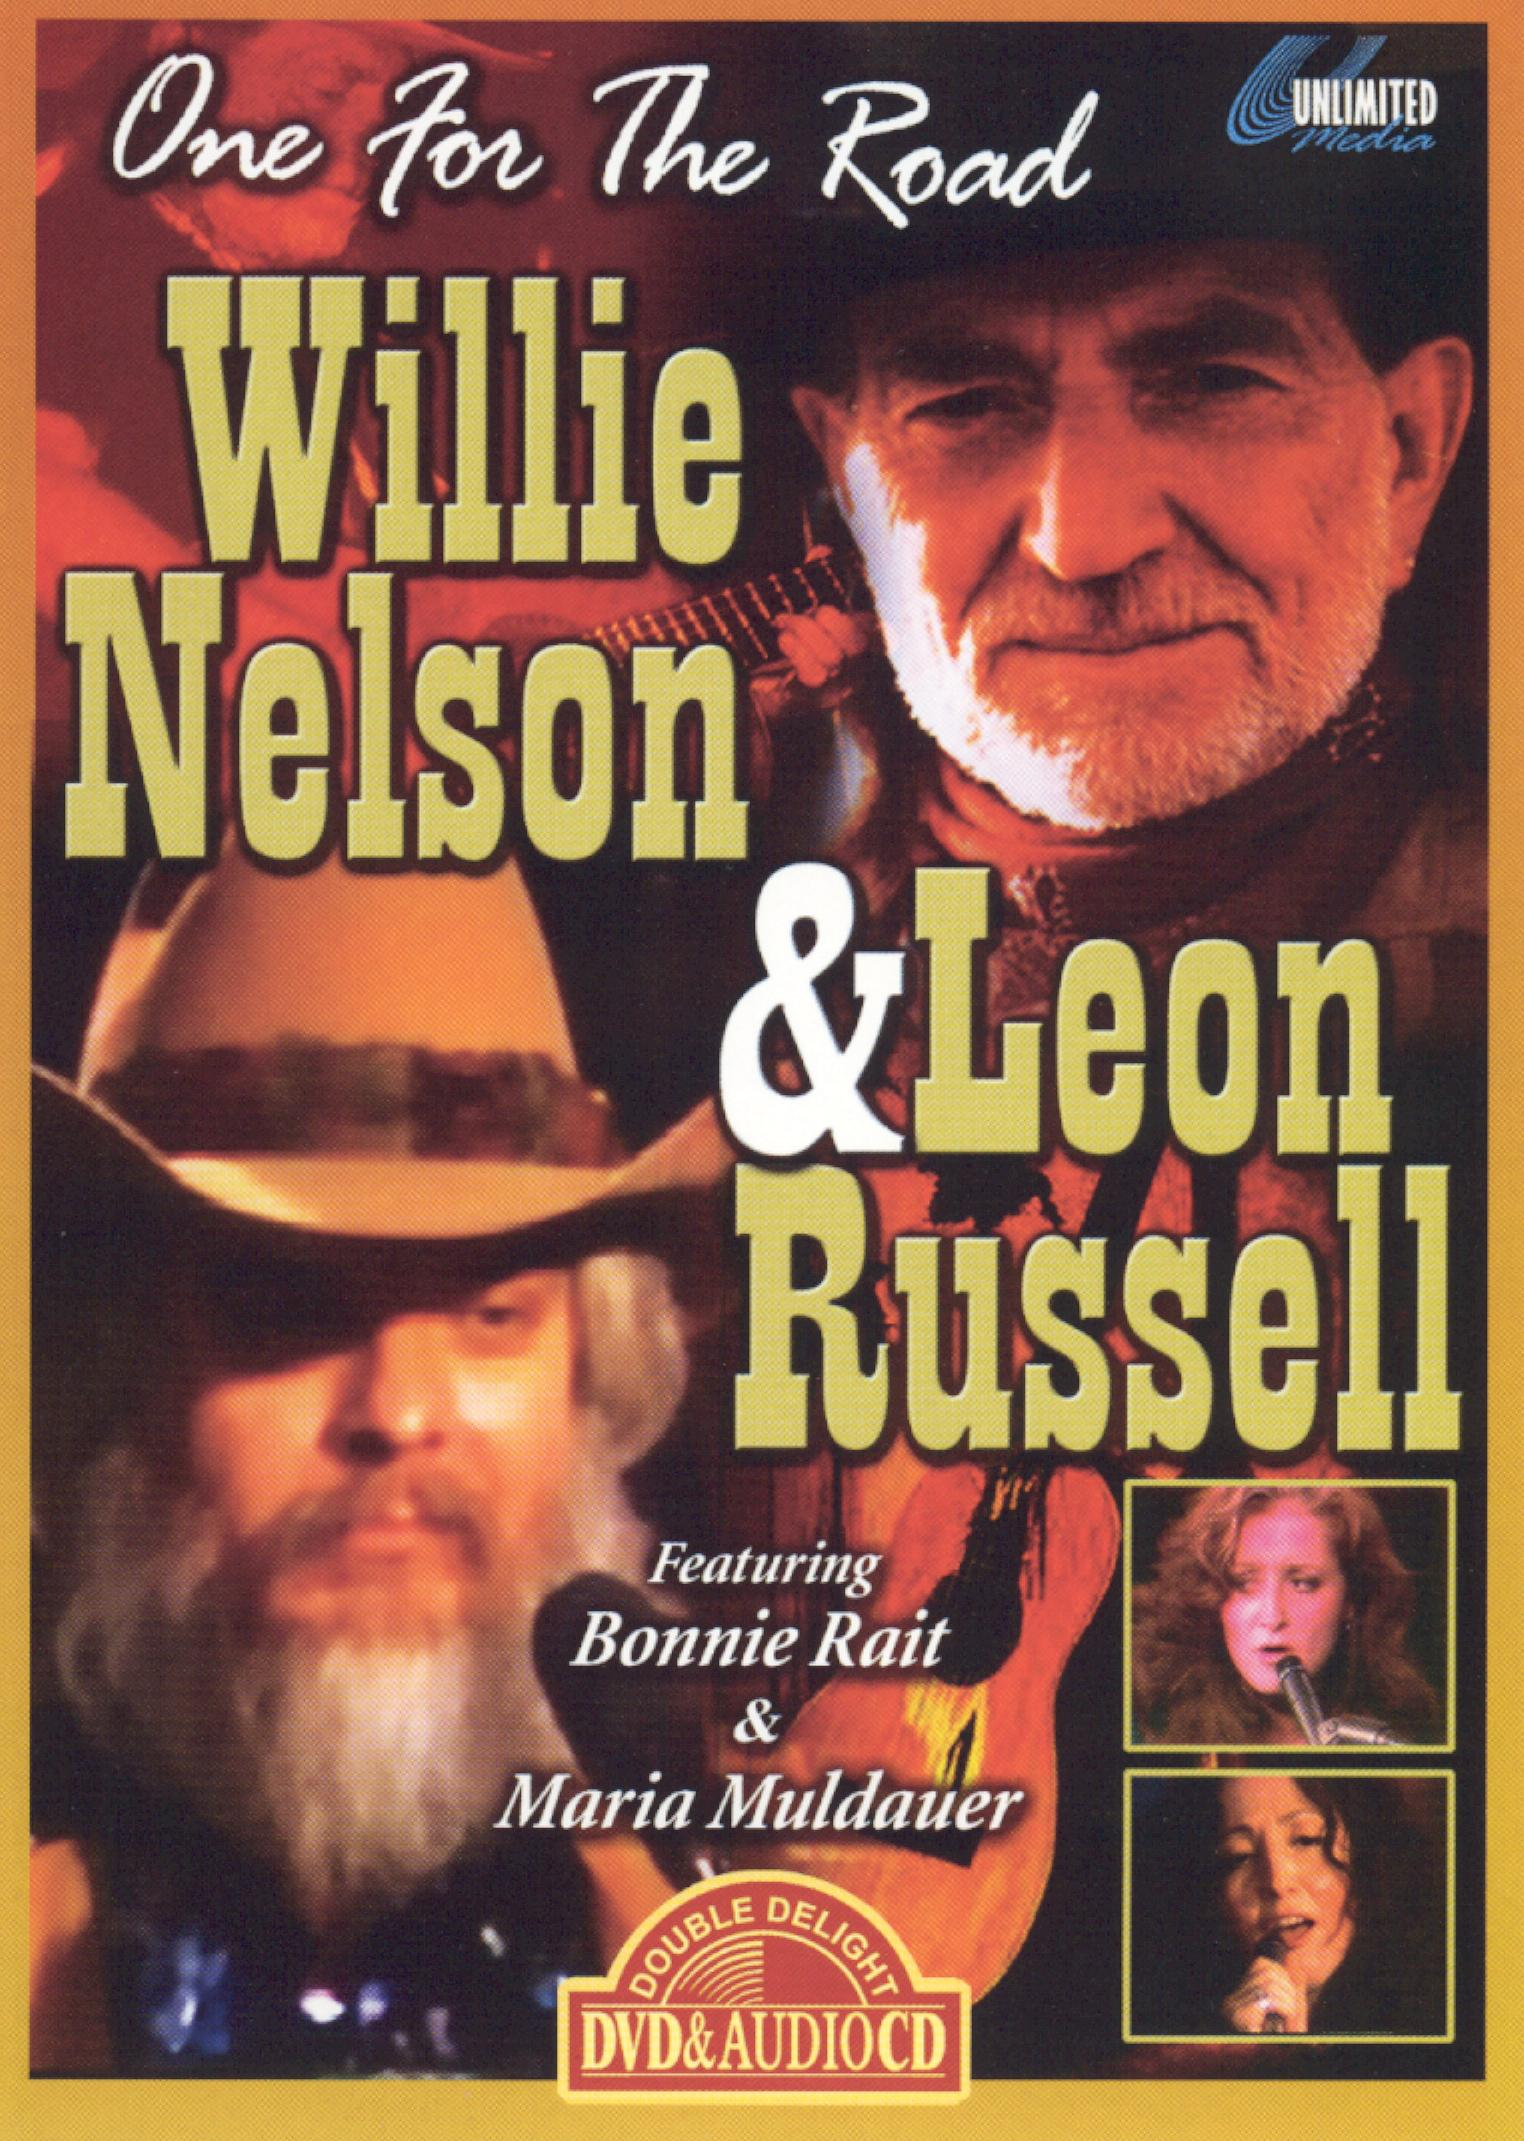 Willie Nelson & Leon Russell: One for the Road